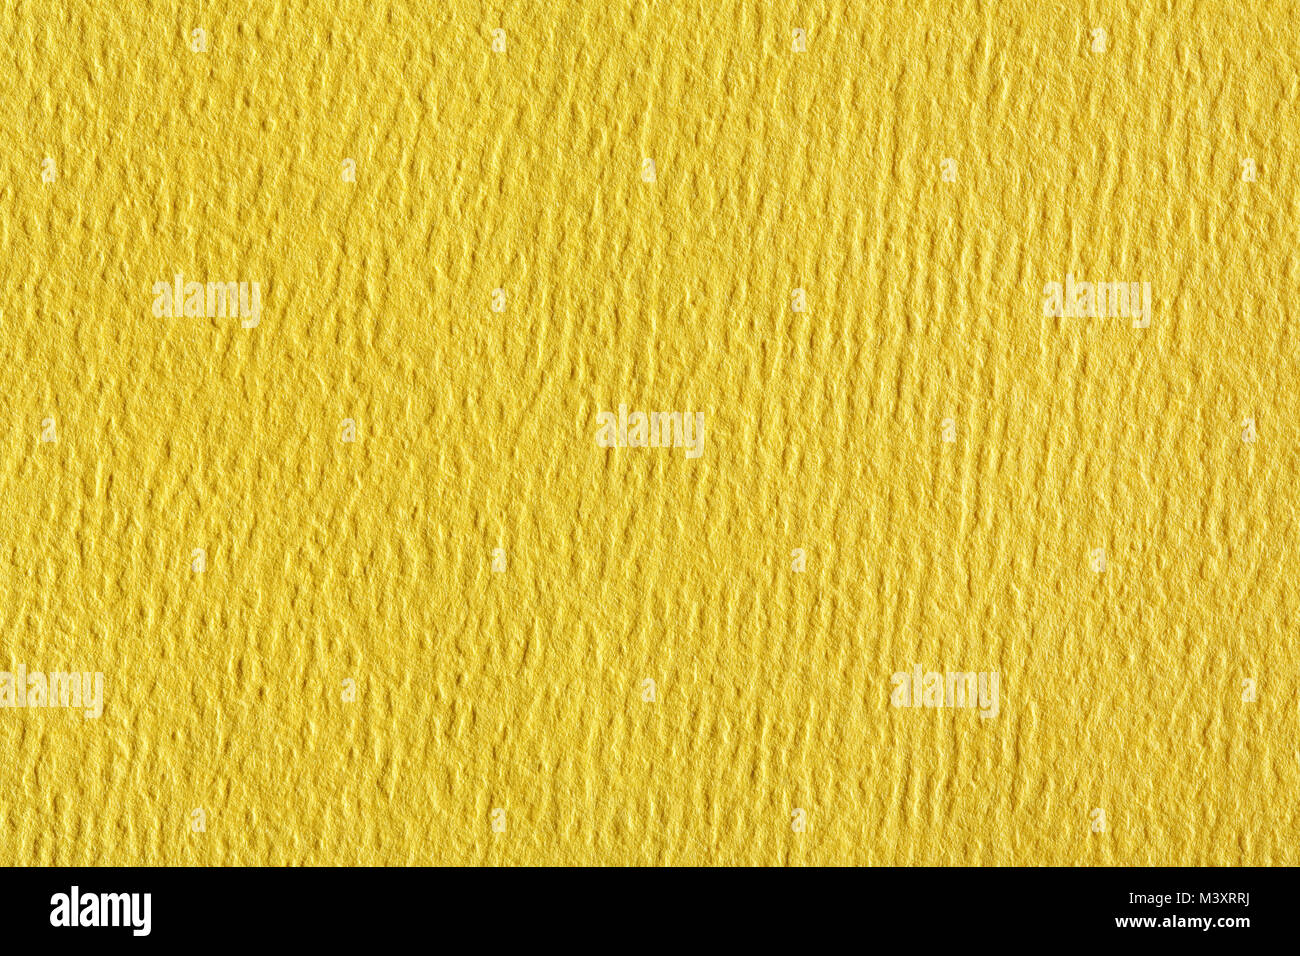 Soft yellow fabric wallpaper texture background. - Stock Image